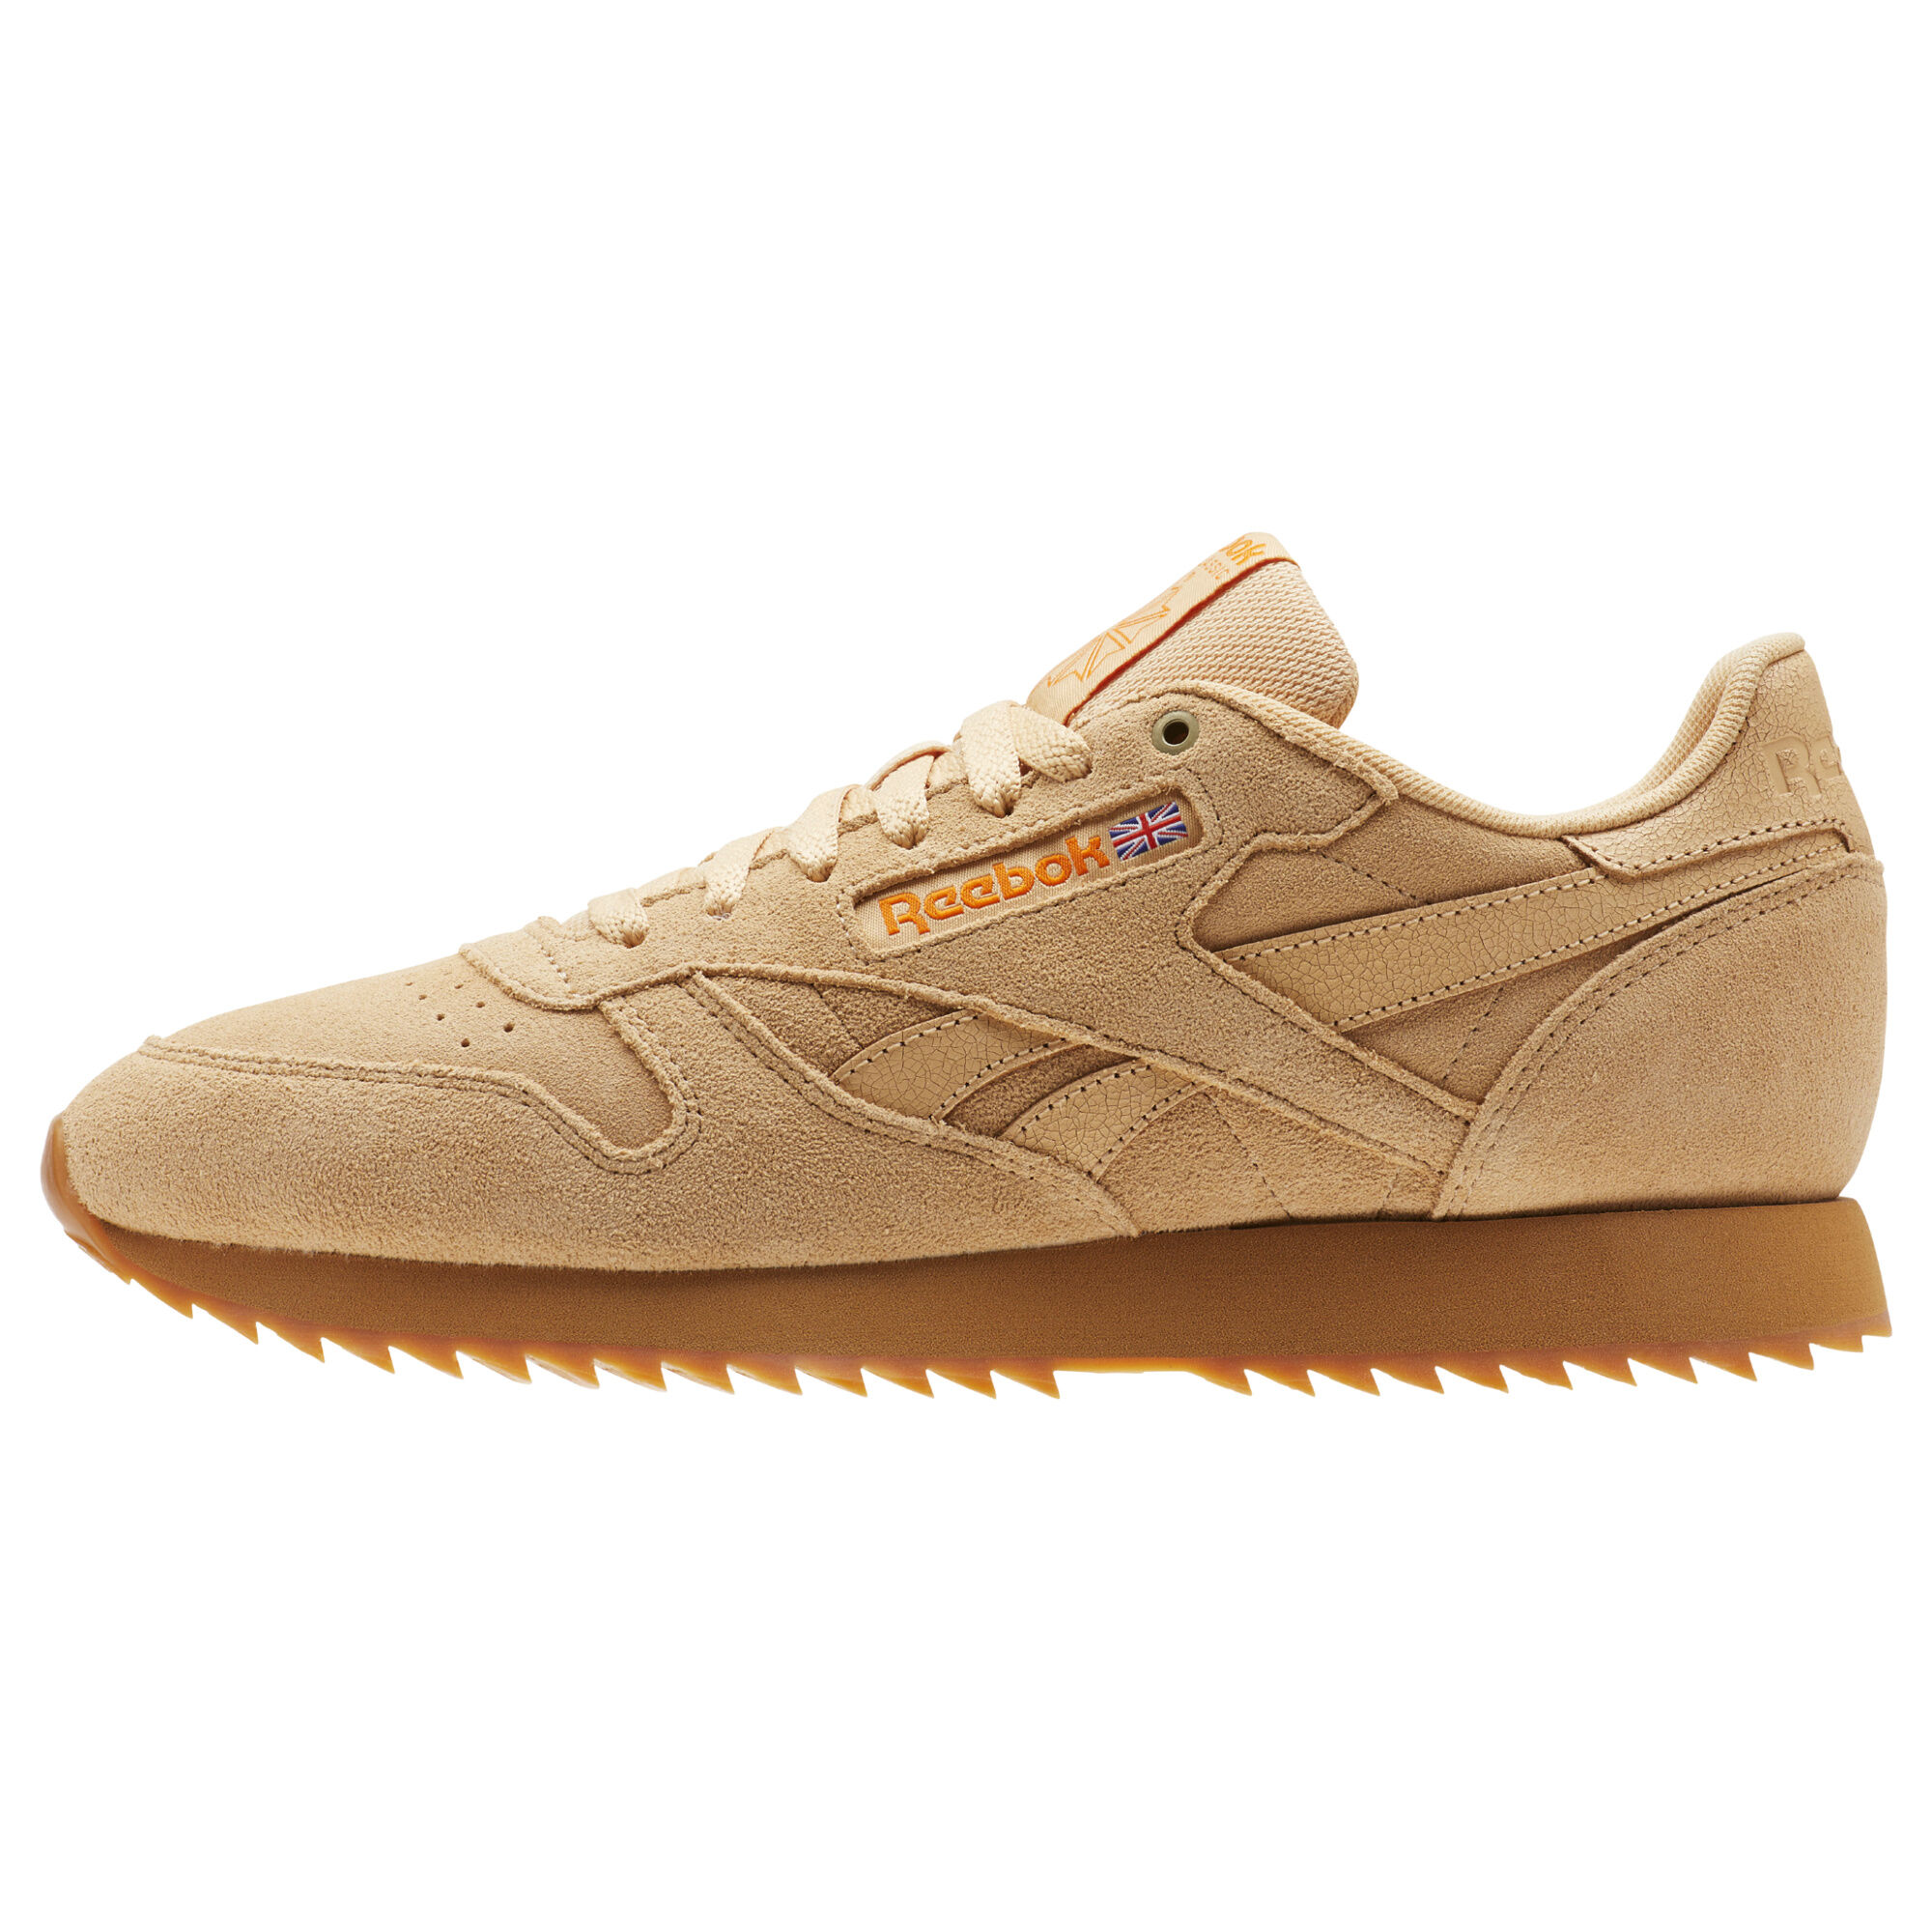 6af1a87c7a3 Reebok Classic Leather Montana Cans - Brown